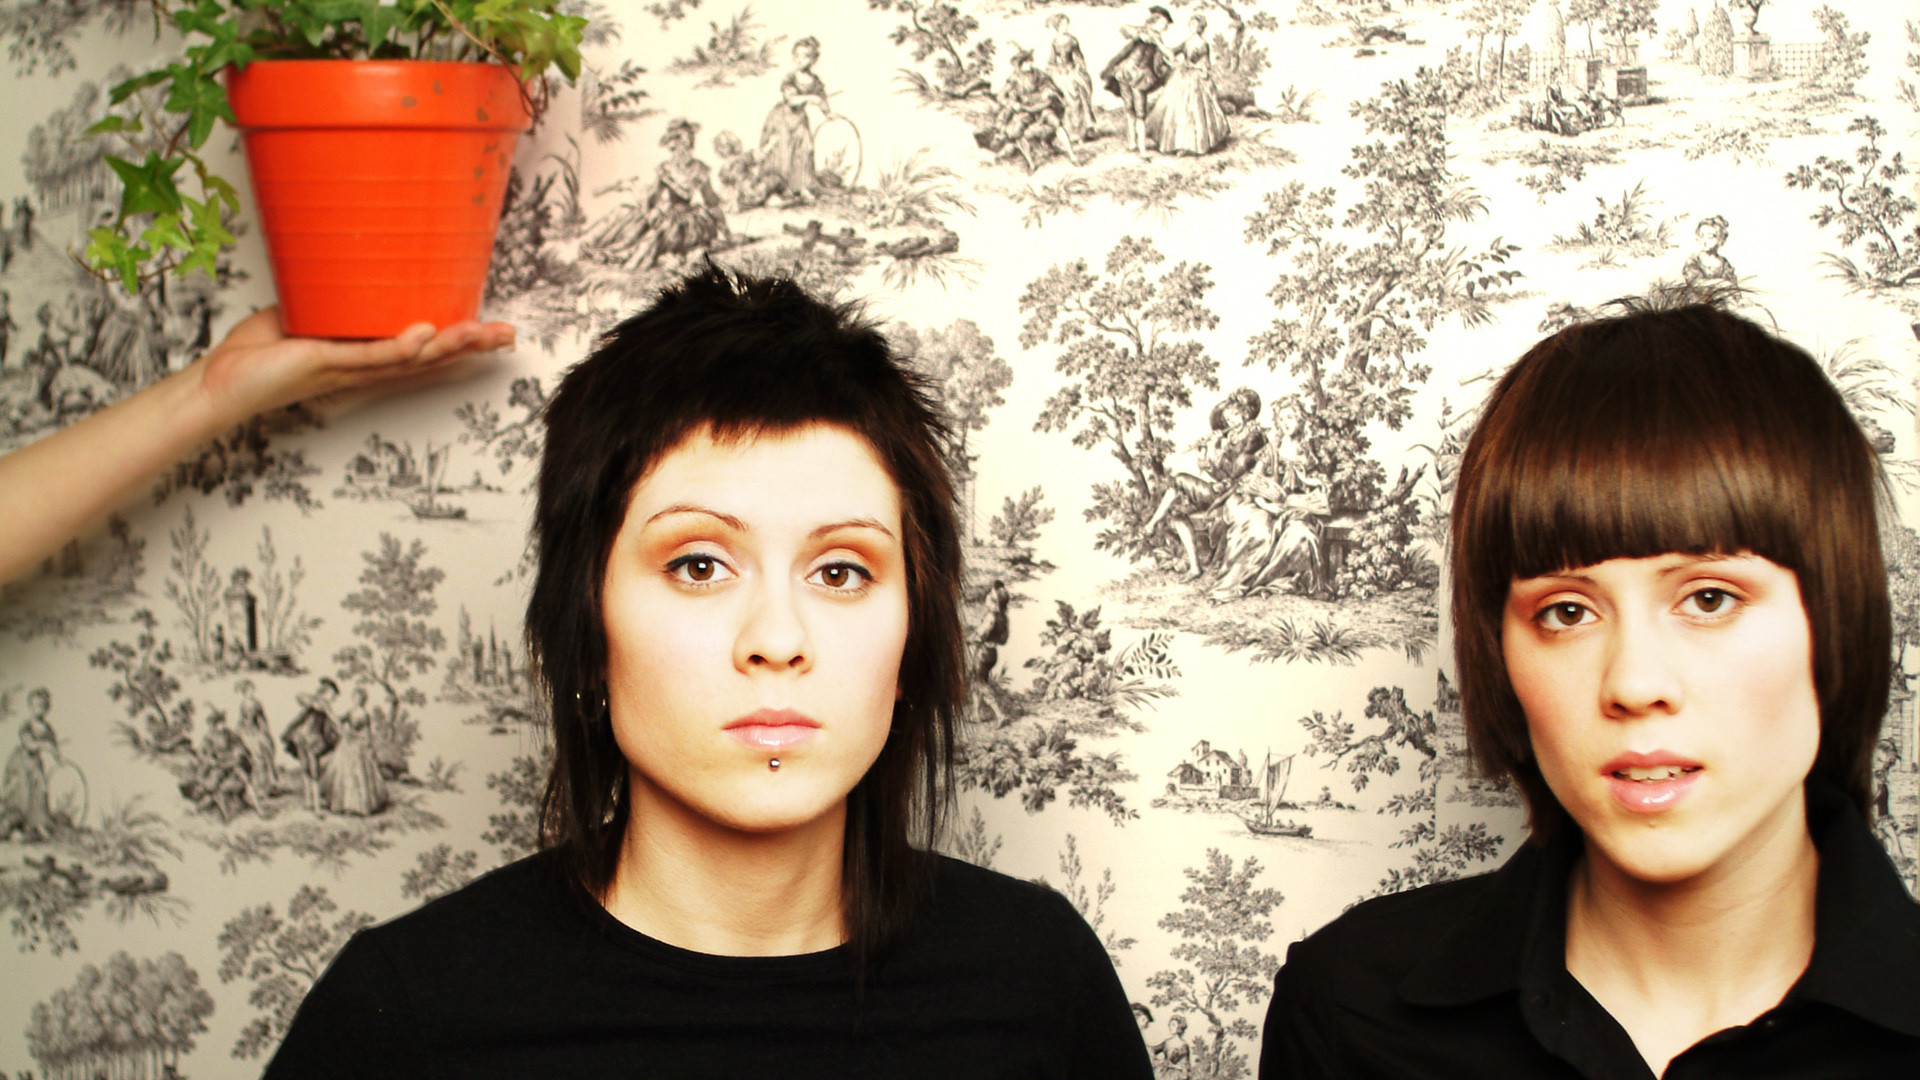 1920x1080 Tegan and Sara backdrop wallpaper